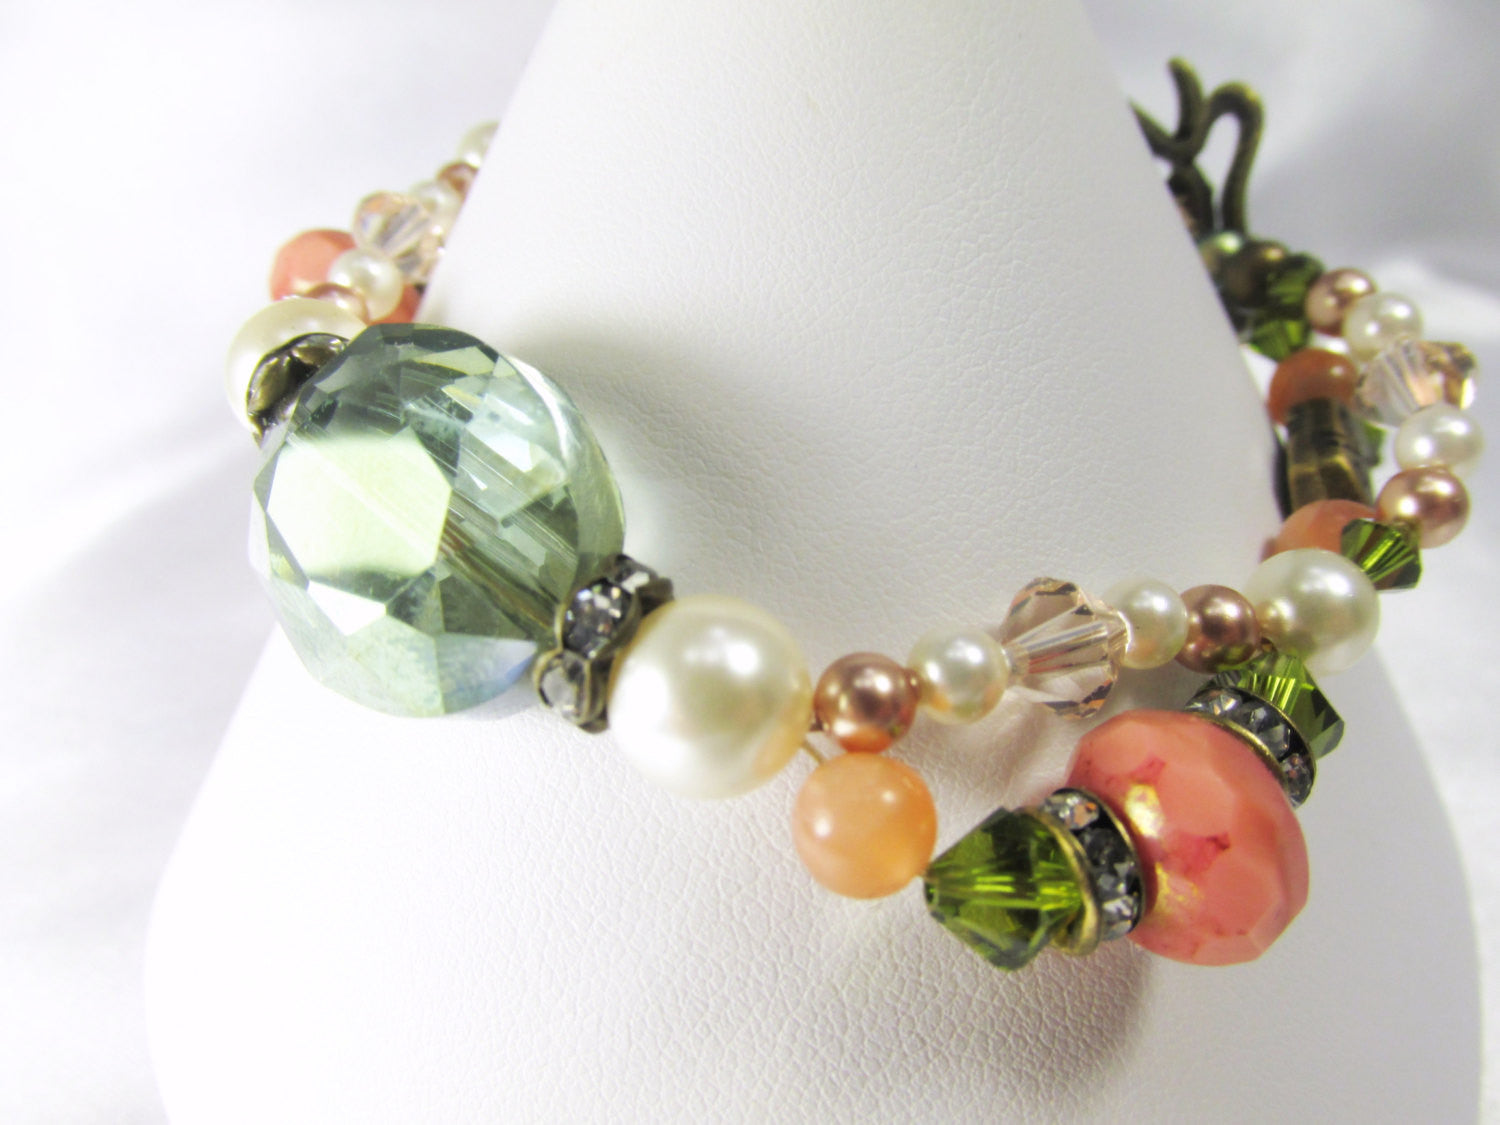 Antique Brass Bracelet in Olive Green Crystals, Coral Czech Rondelles, Moonstone gemstones, Swarovski Pearls and Crystals - Odyssey Creations